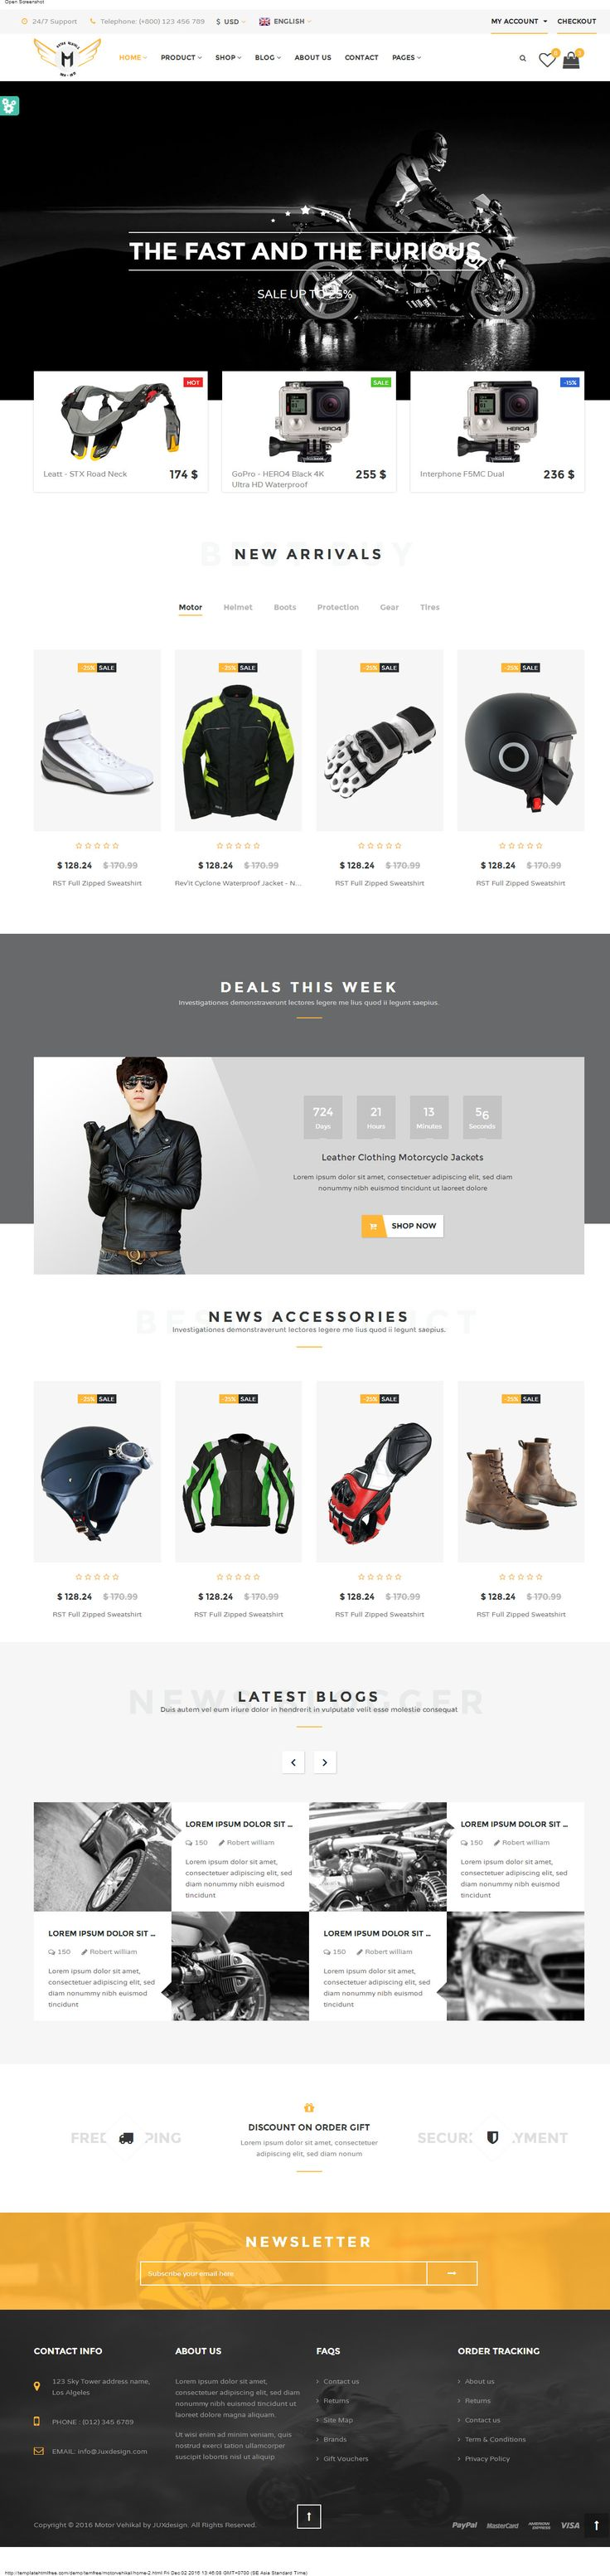 203 best Free HTML Templates images on Pinterest | Free html ...